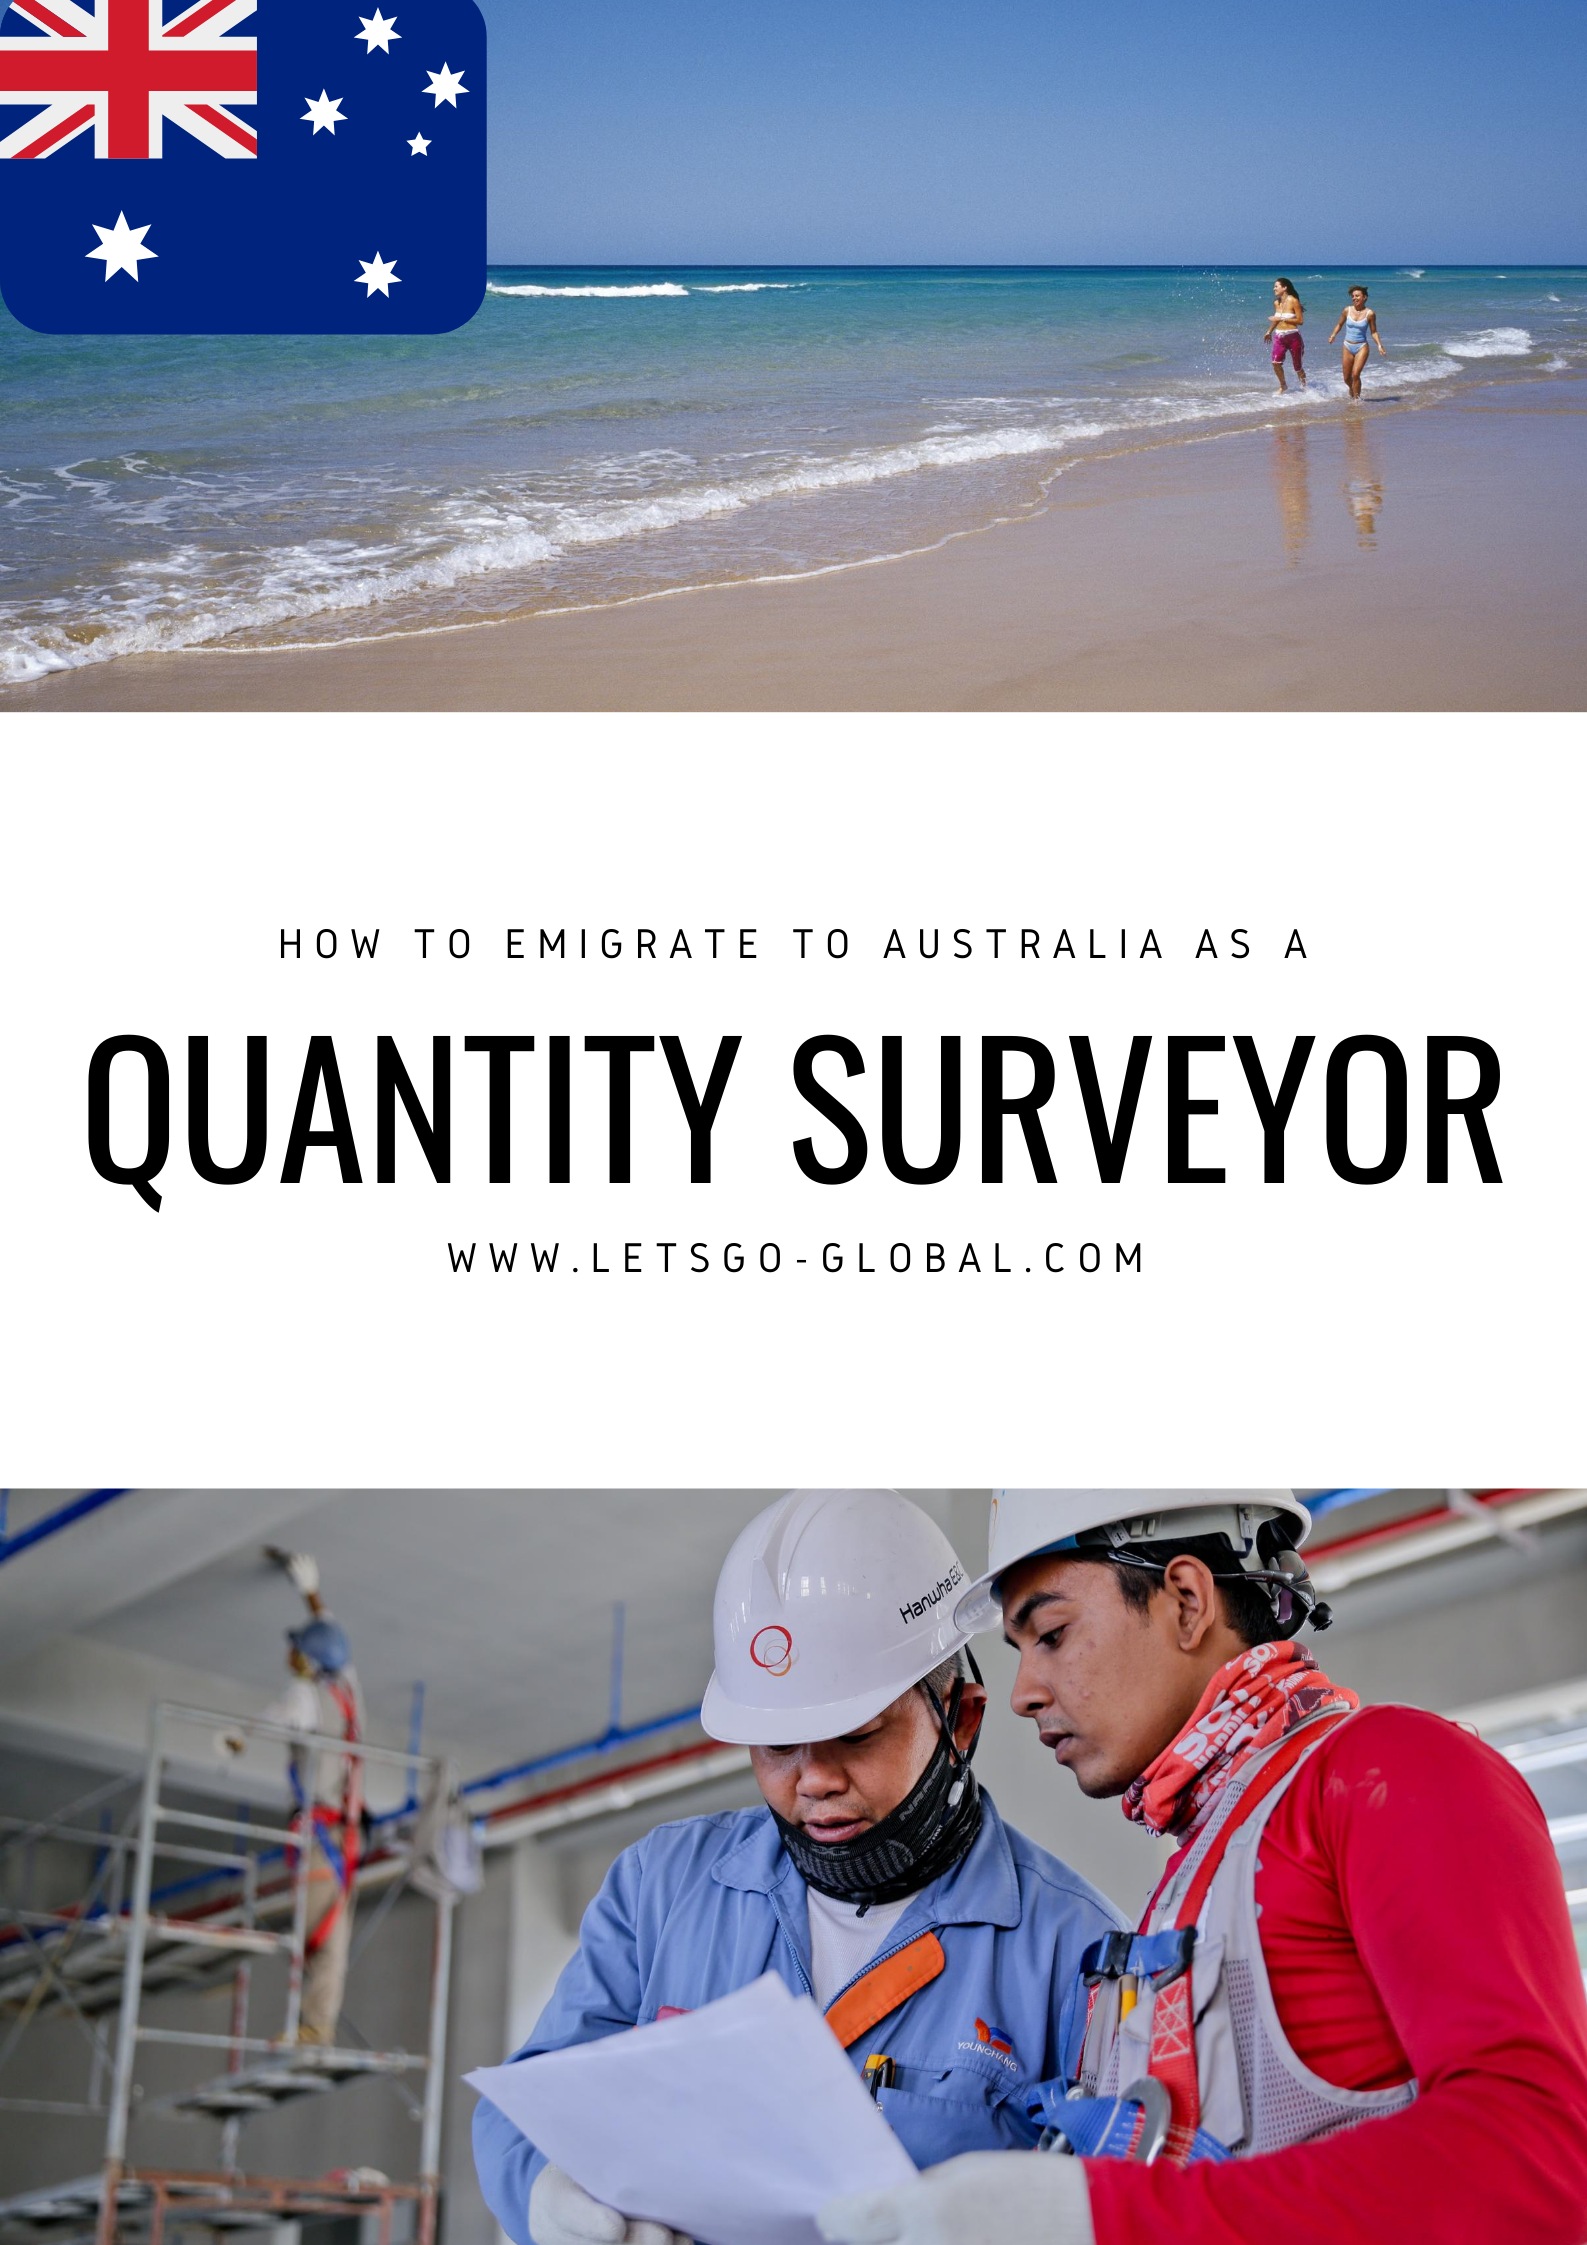 Migrate to Australia as a Quantity Surveyor